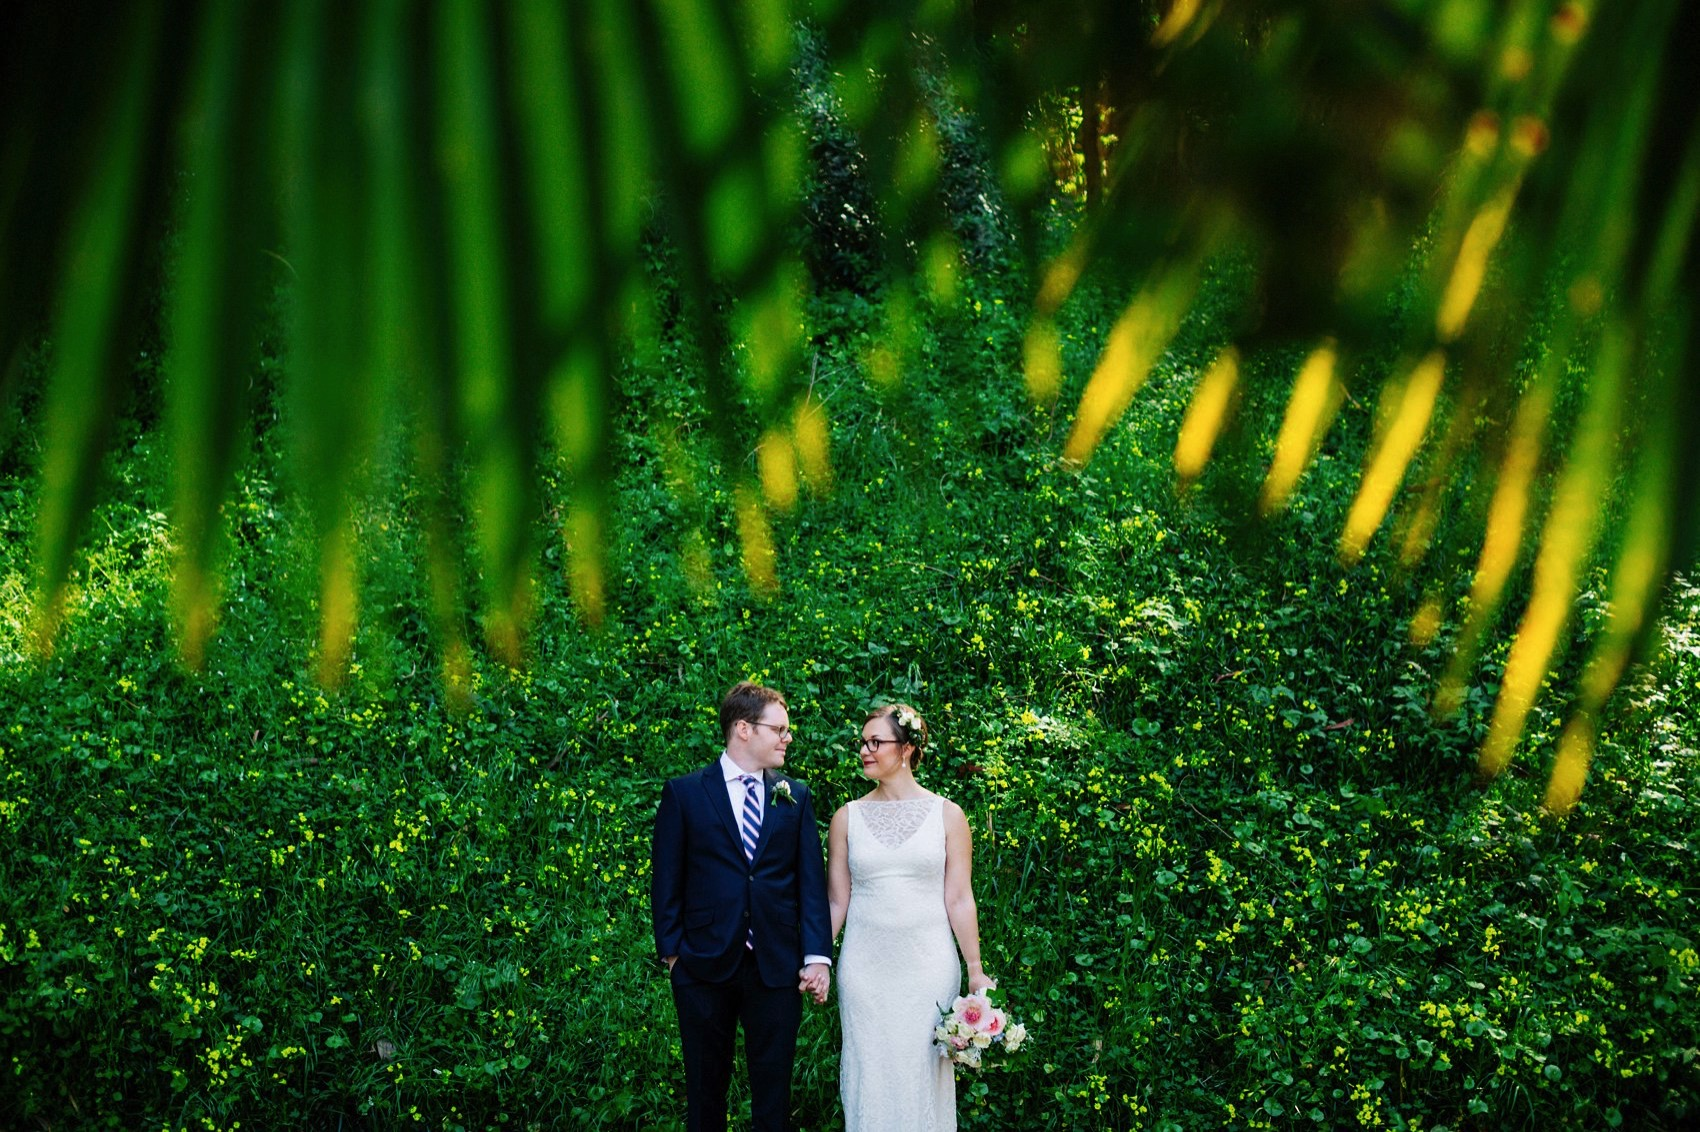 Presidio wedding San Francisco 033 photo